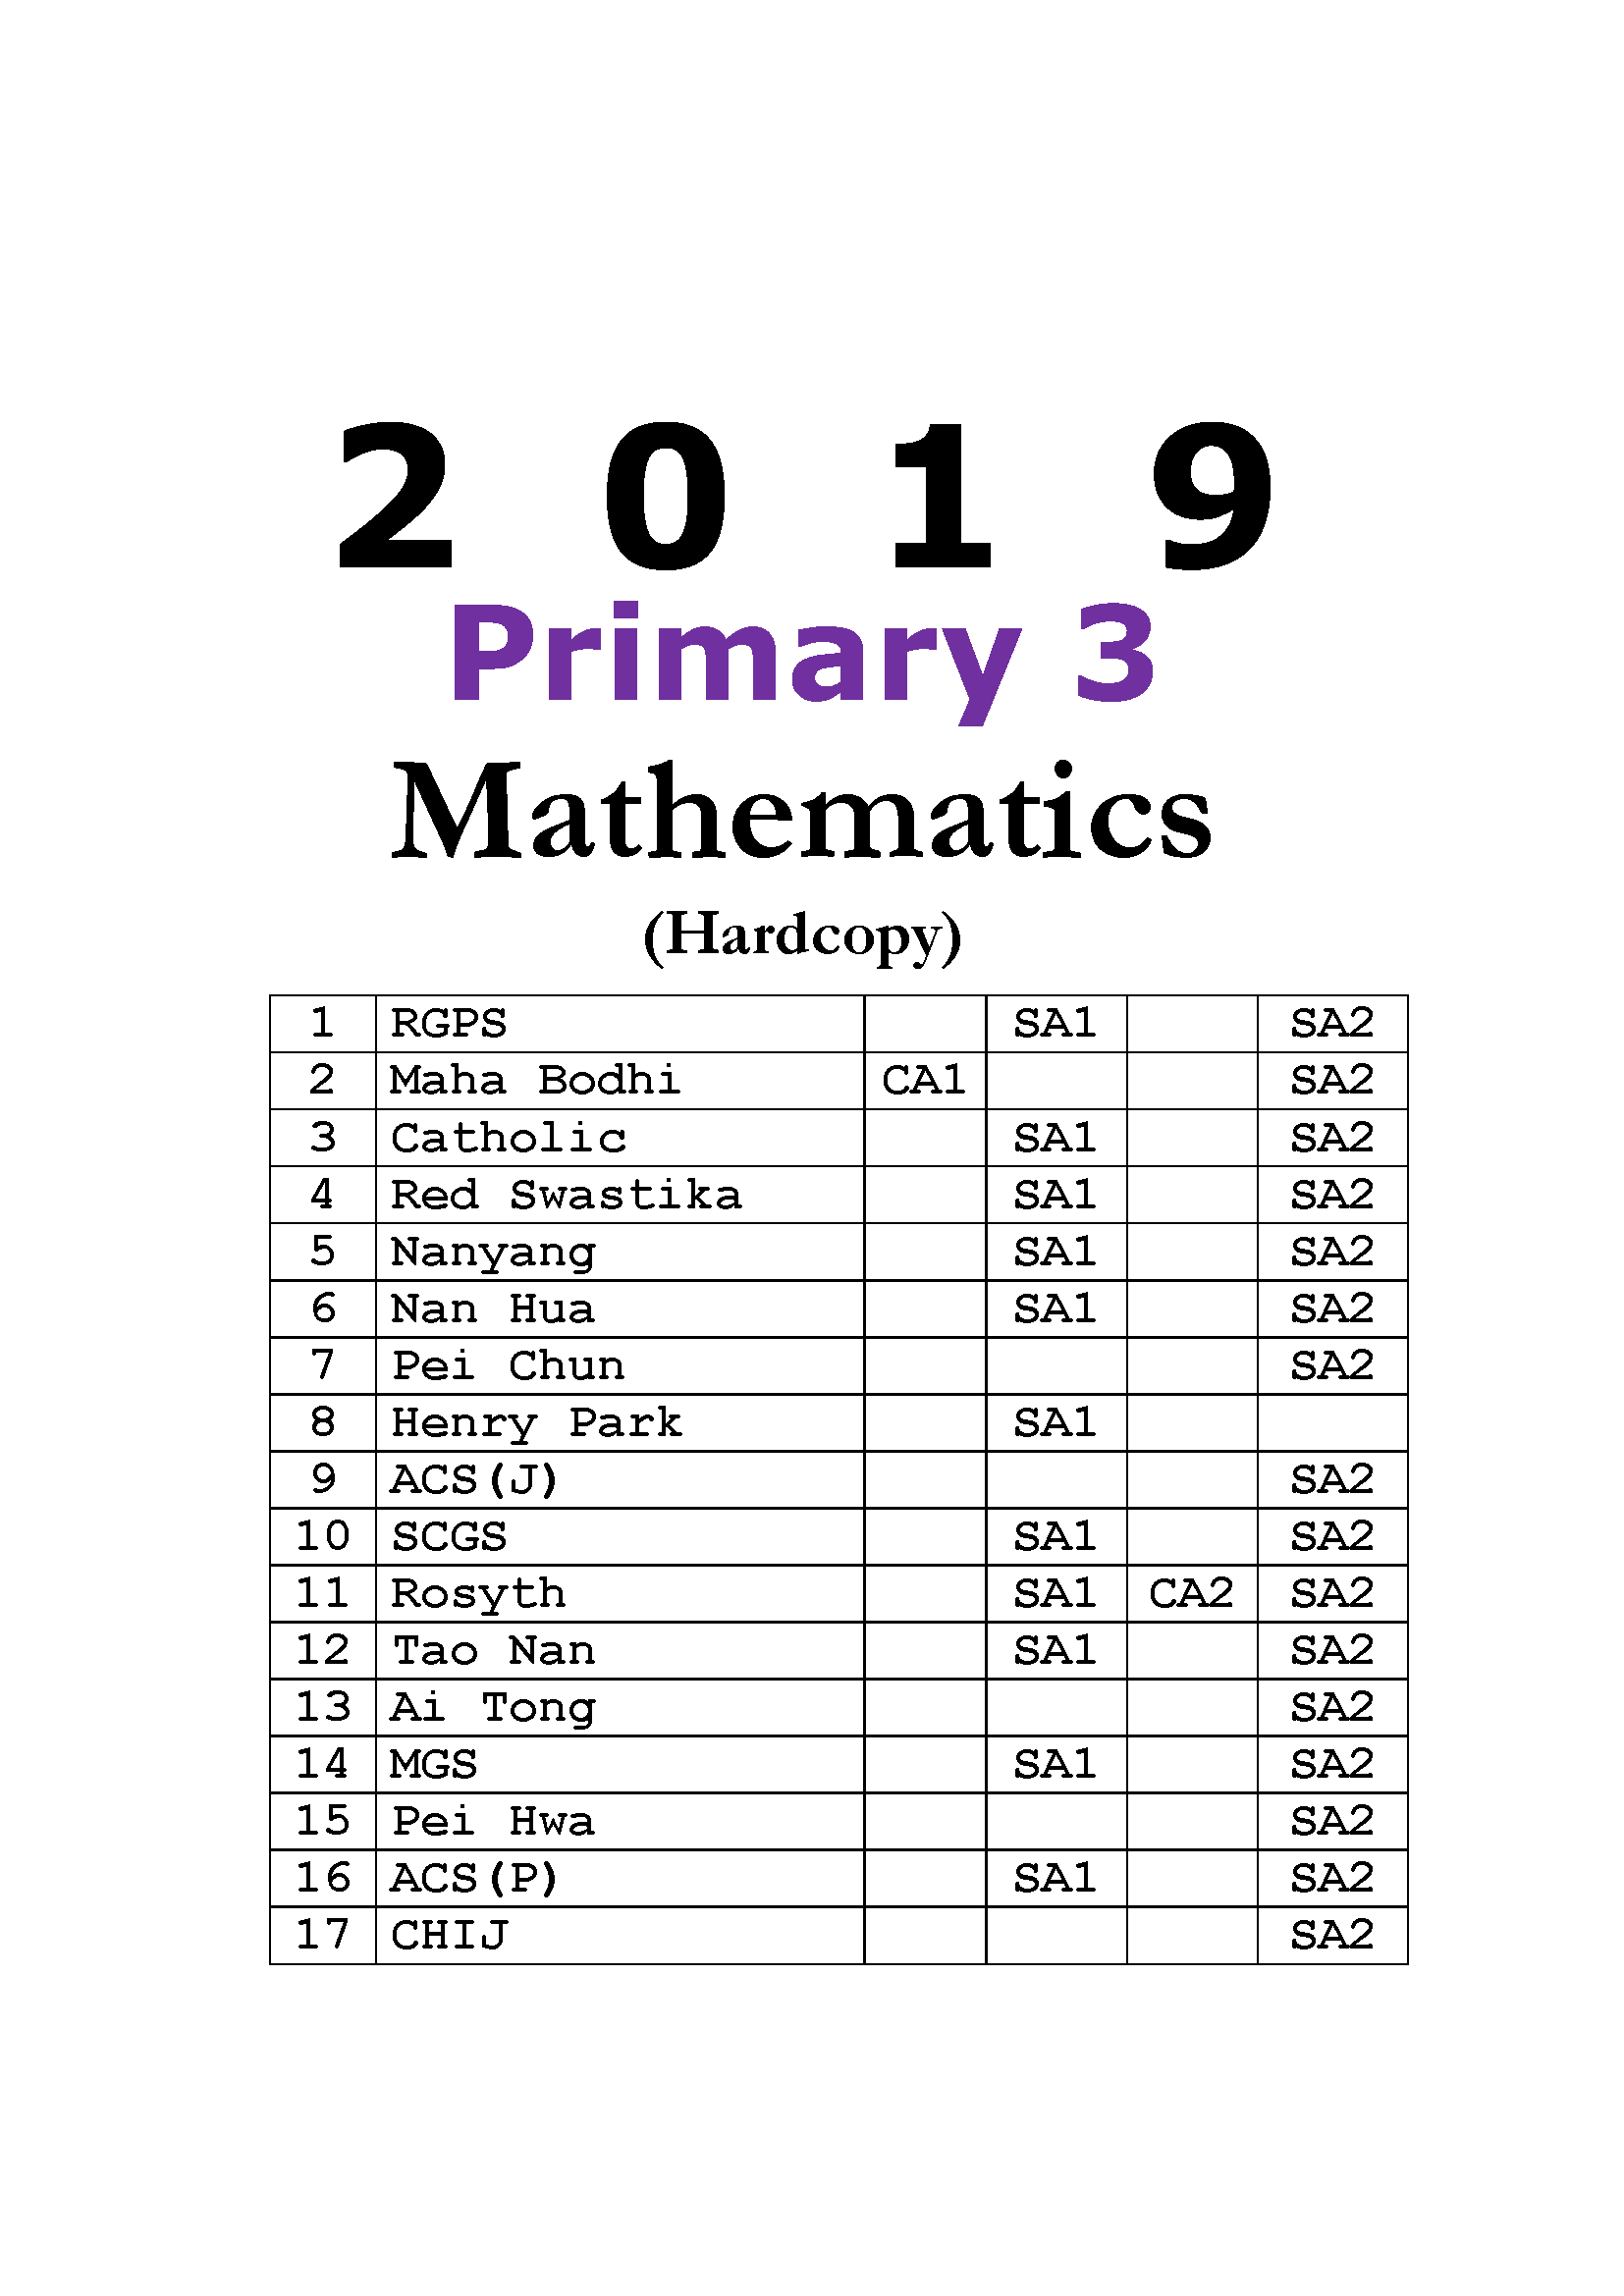 2019 Primary 3 Mathematics Exam Papers (hardcopy) + FREE